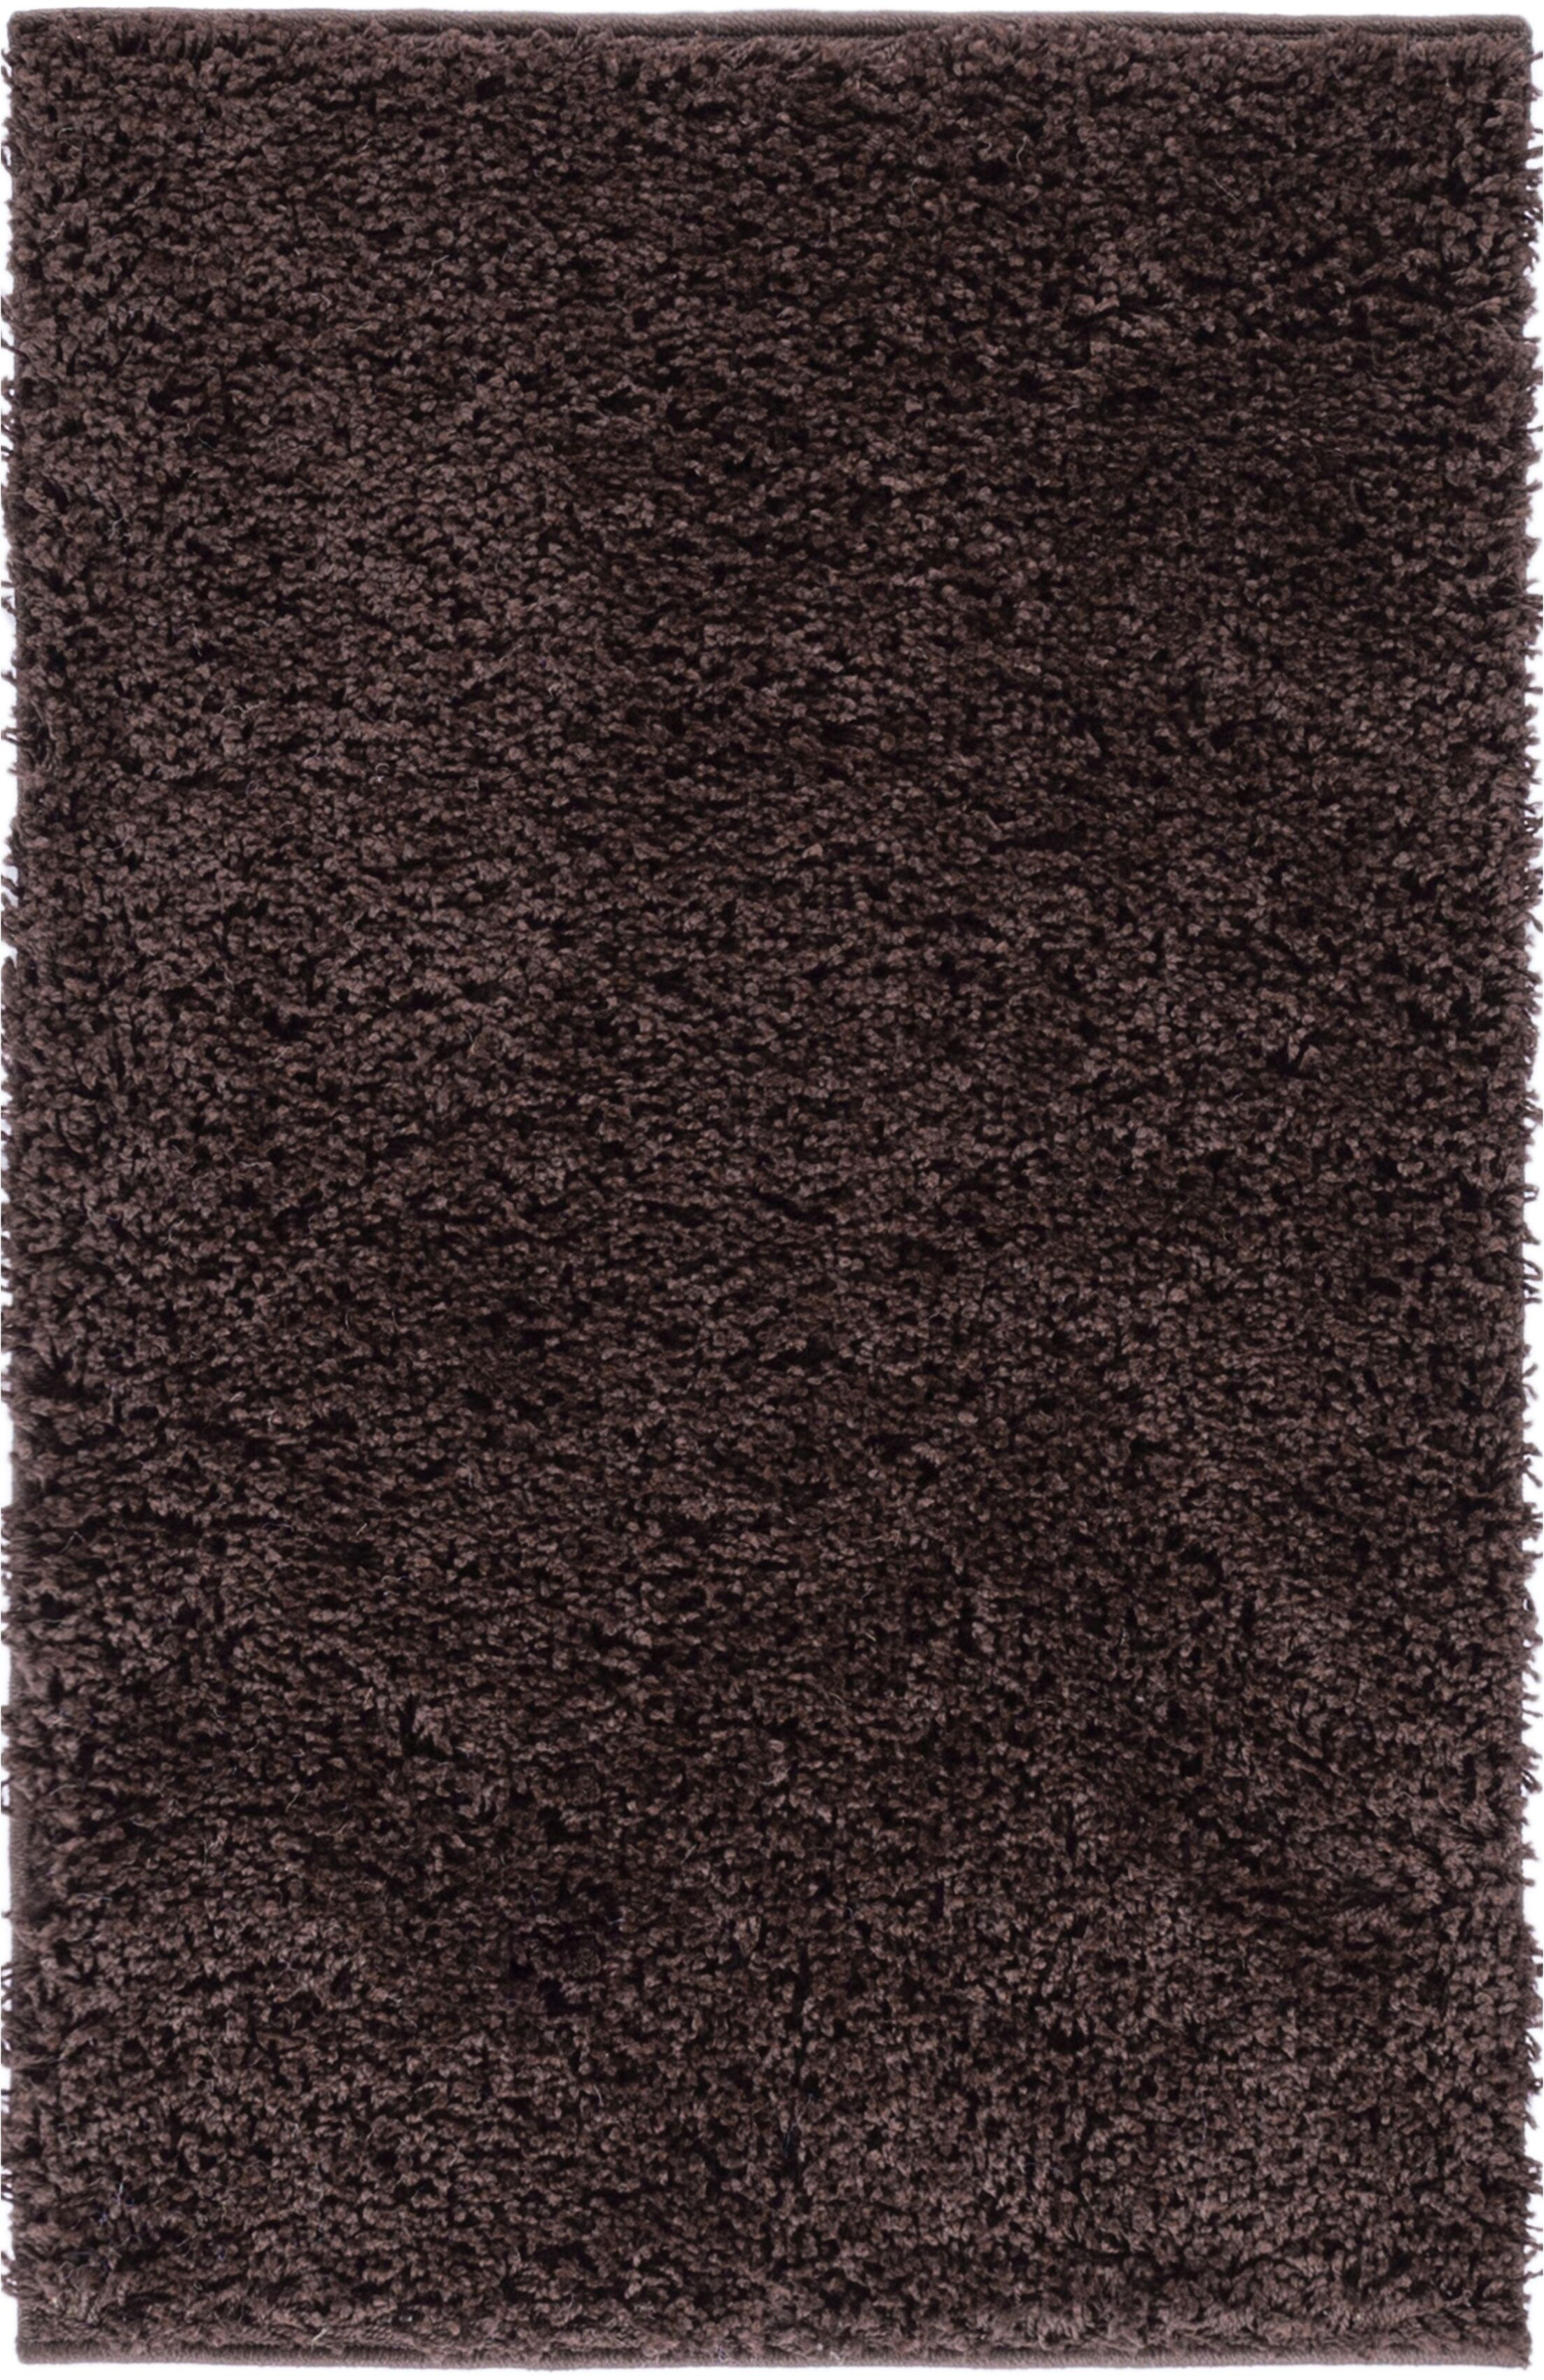 Dondre Coffee Bean Indoor Area Rug Rug Size: Rectangle 6'7'' x 9'10''